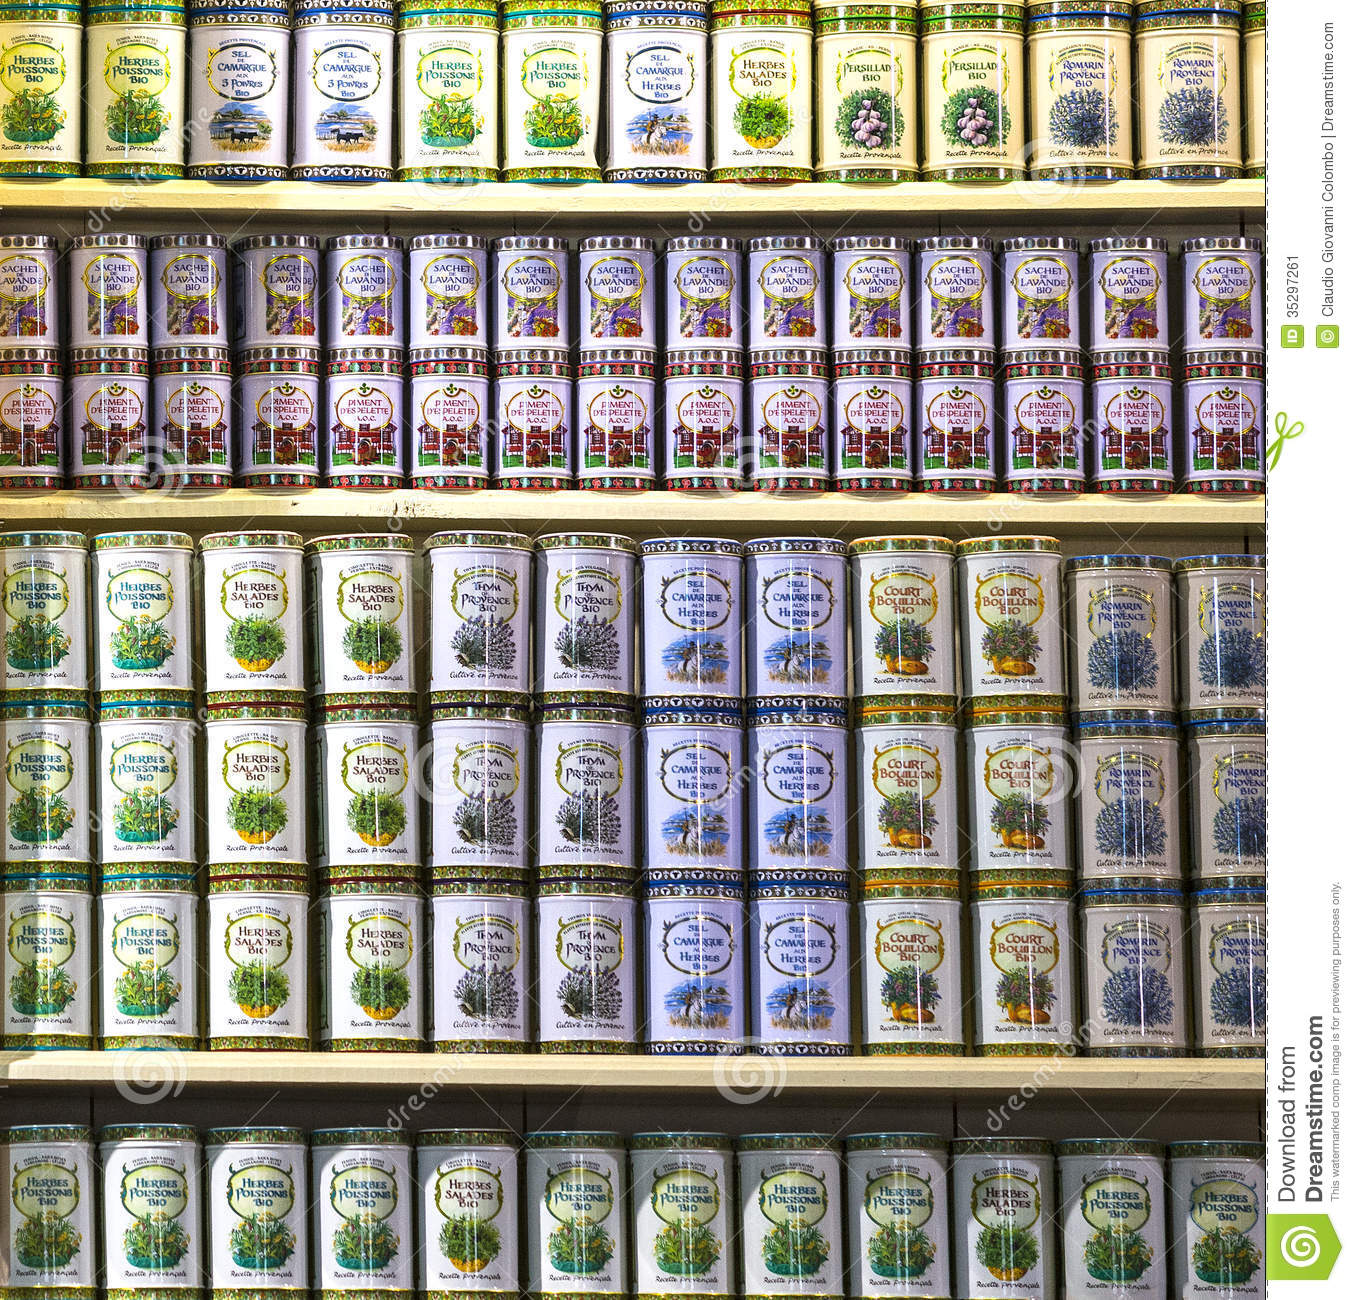 Grocery store shelves clip art grocery store in uzes france